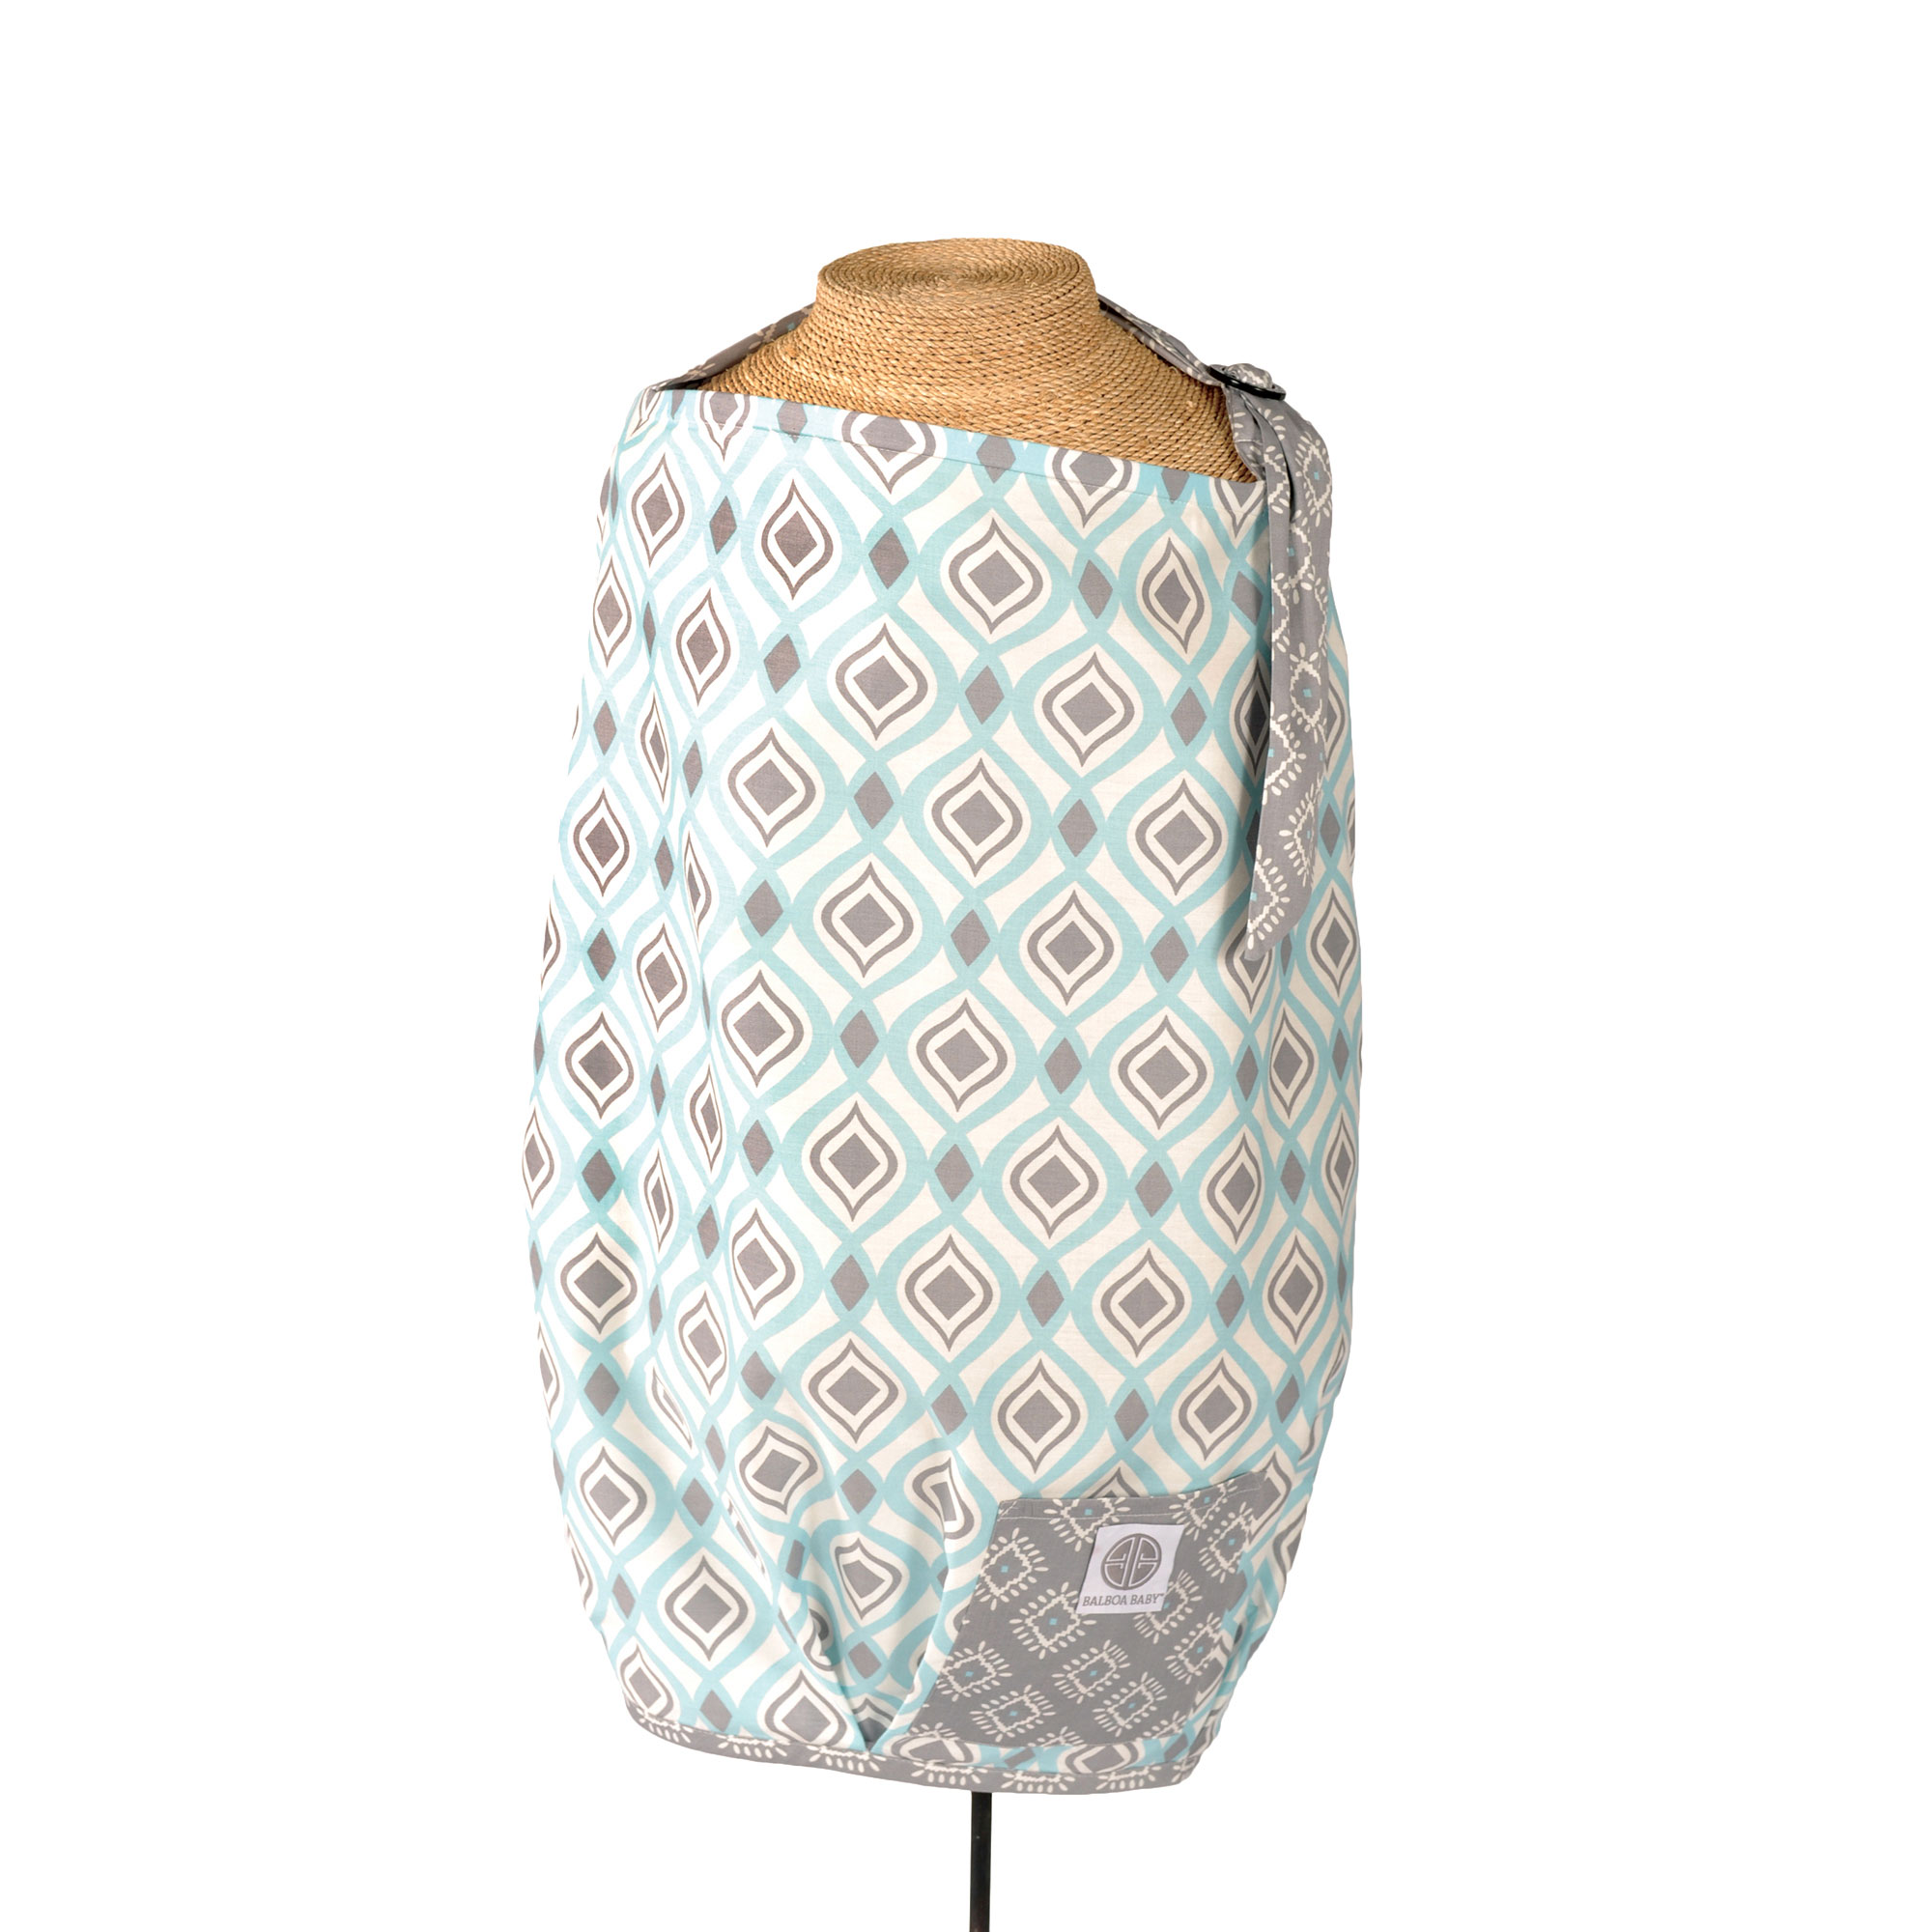 Balboa Baby Nursing Cover 100% Cotton - Boheme Aqua Blue and Grey Contoured Design - Dr. Sears Recommended